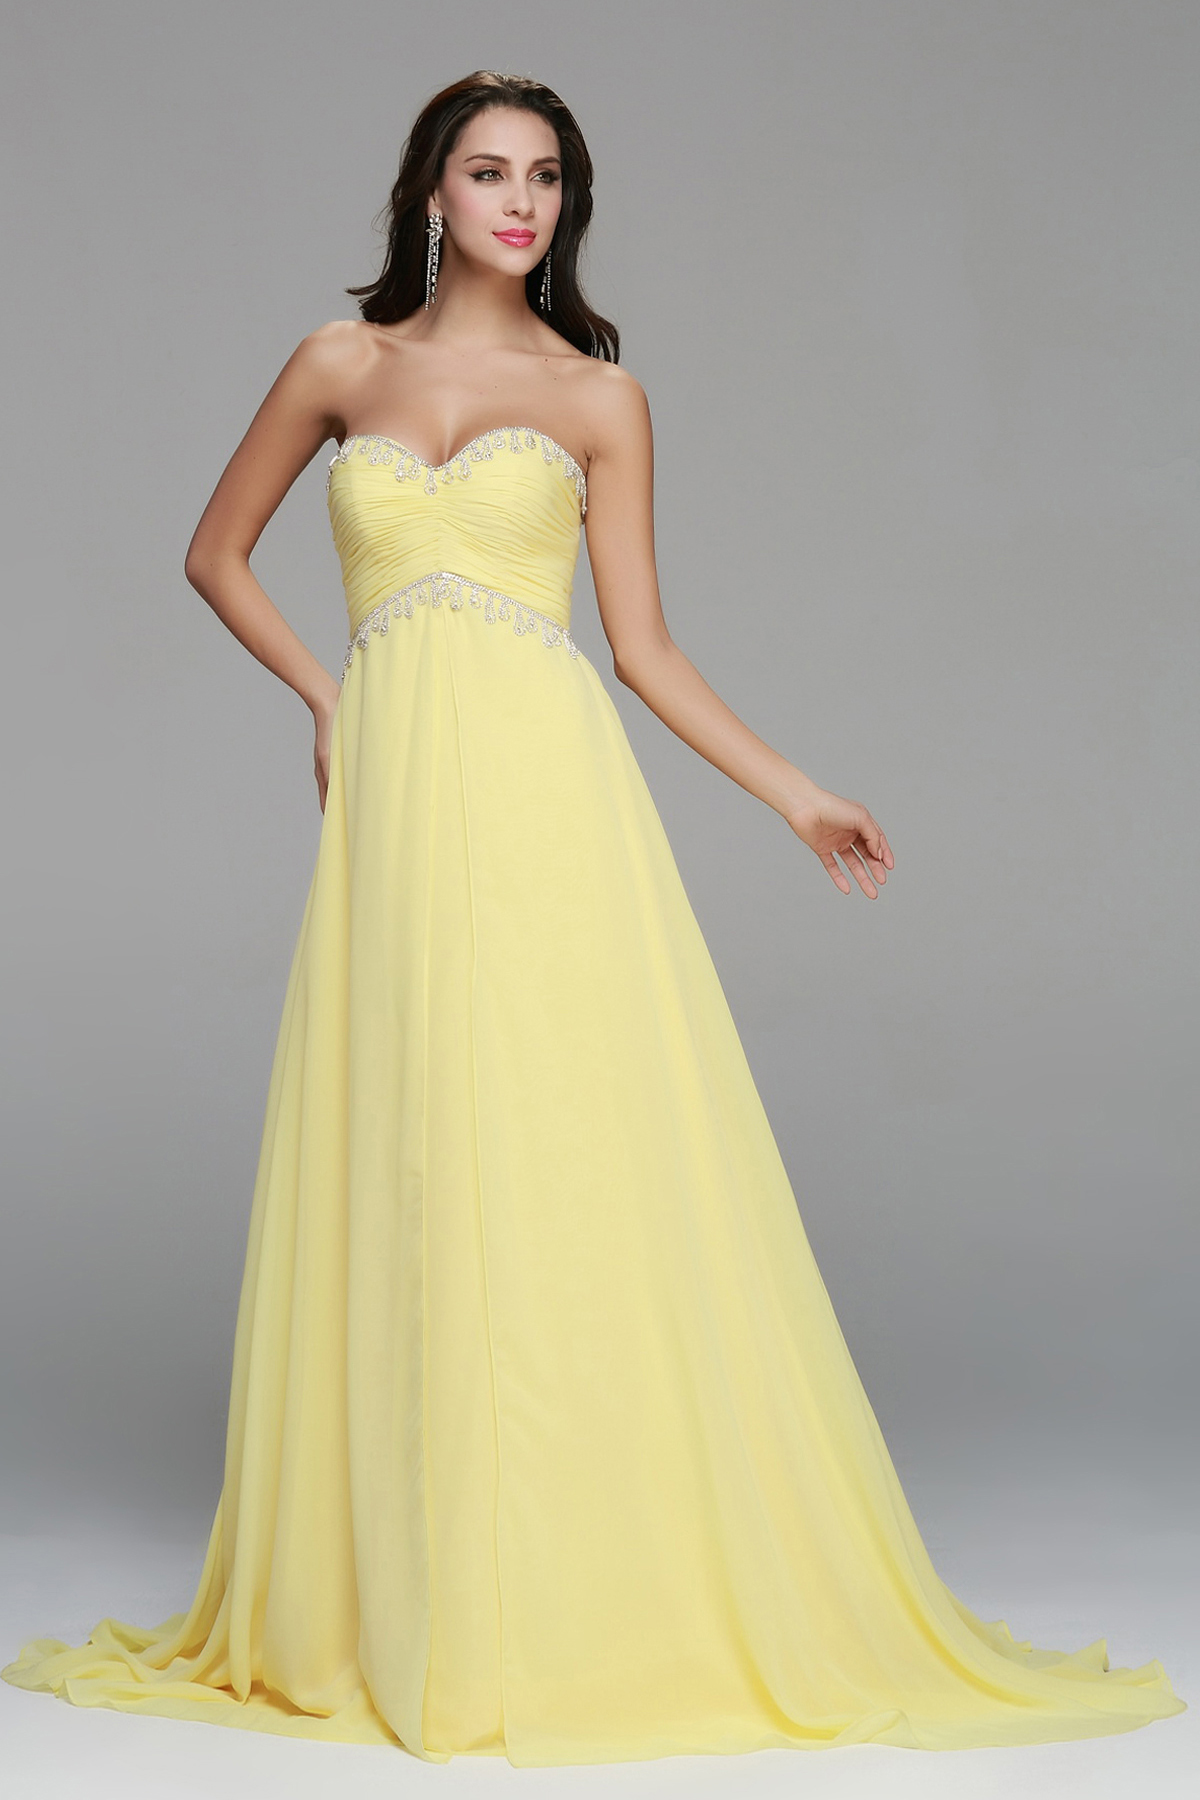 Strapless Beading A-line Yellow Chiffon Prom Dress